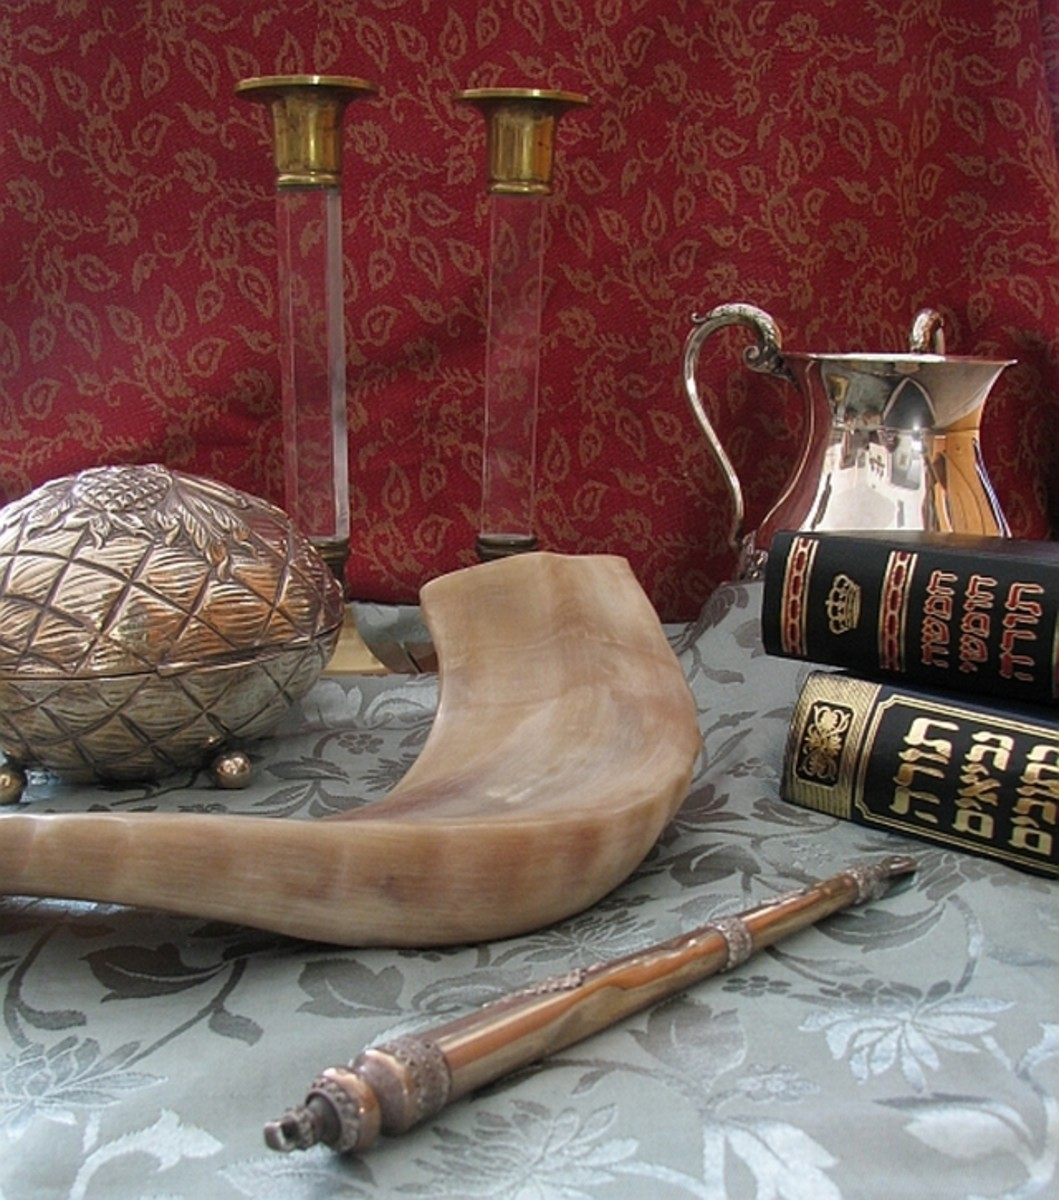 THE TOOLS OF JUDAICA